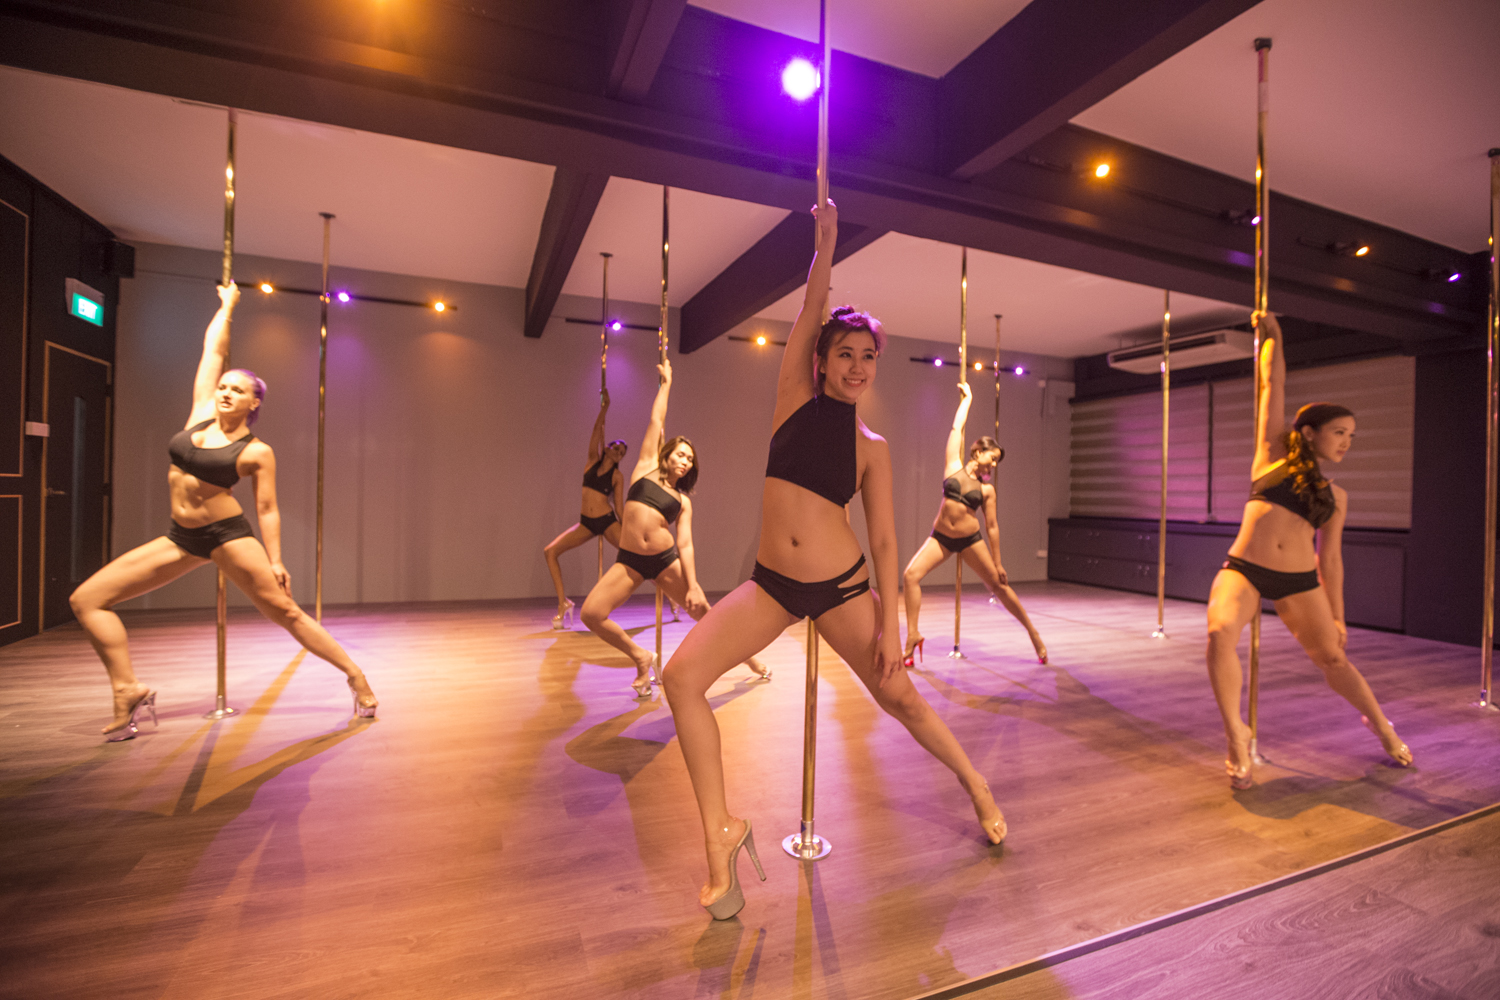 TRIAL CLASSES   Are you curious and not sure if this is for you? Try out our 1 hour introduction to the basics of Pole dancing, Striptease or Splits & Backbends for only SGD 15!  Suitable for anyone at any fitness level.   Book a Trial Class